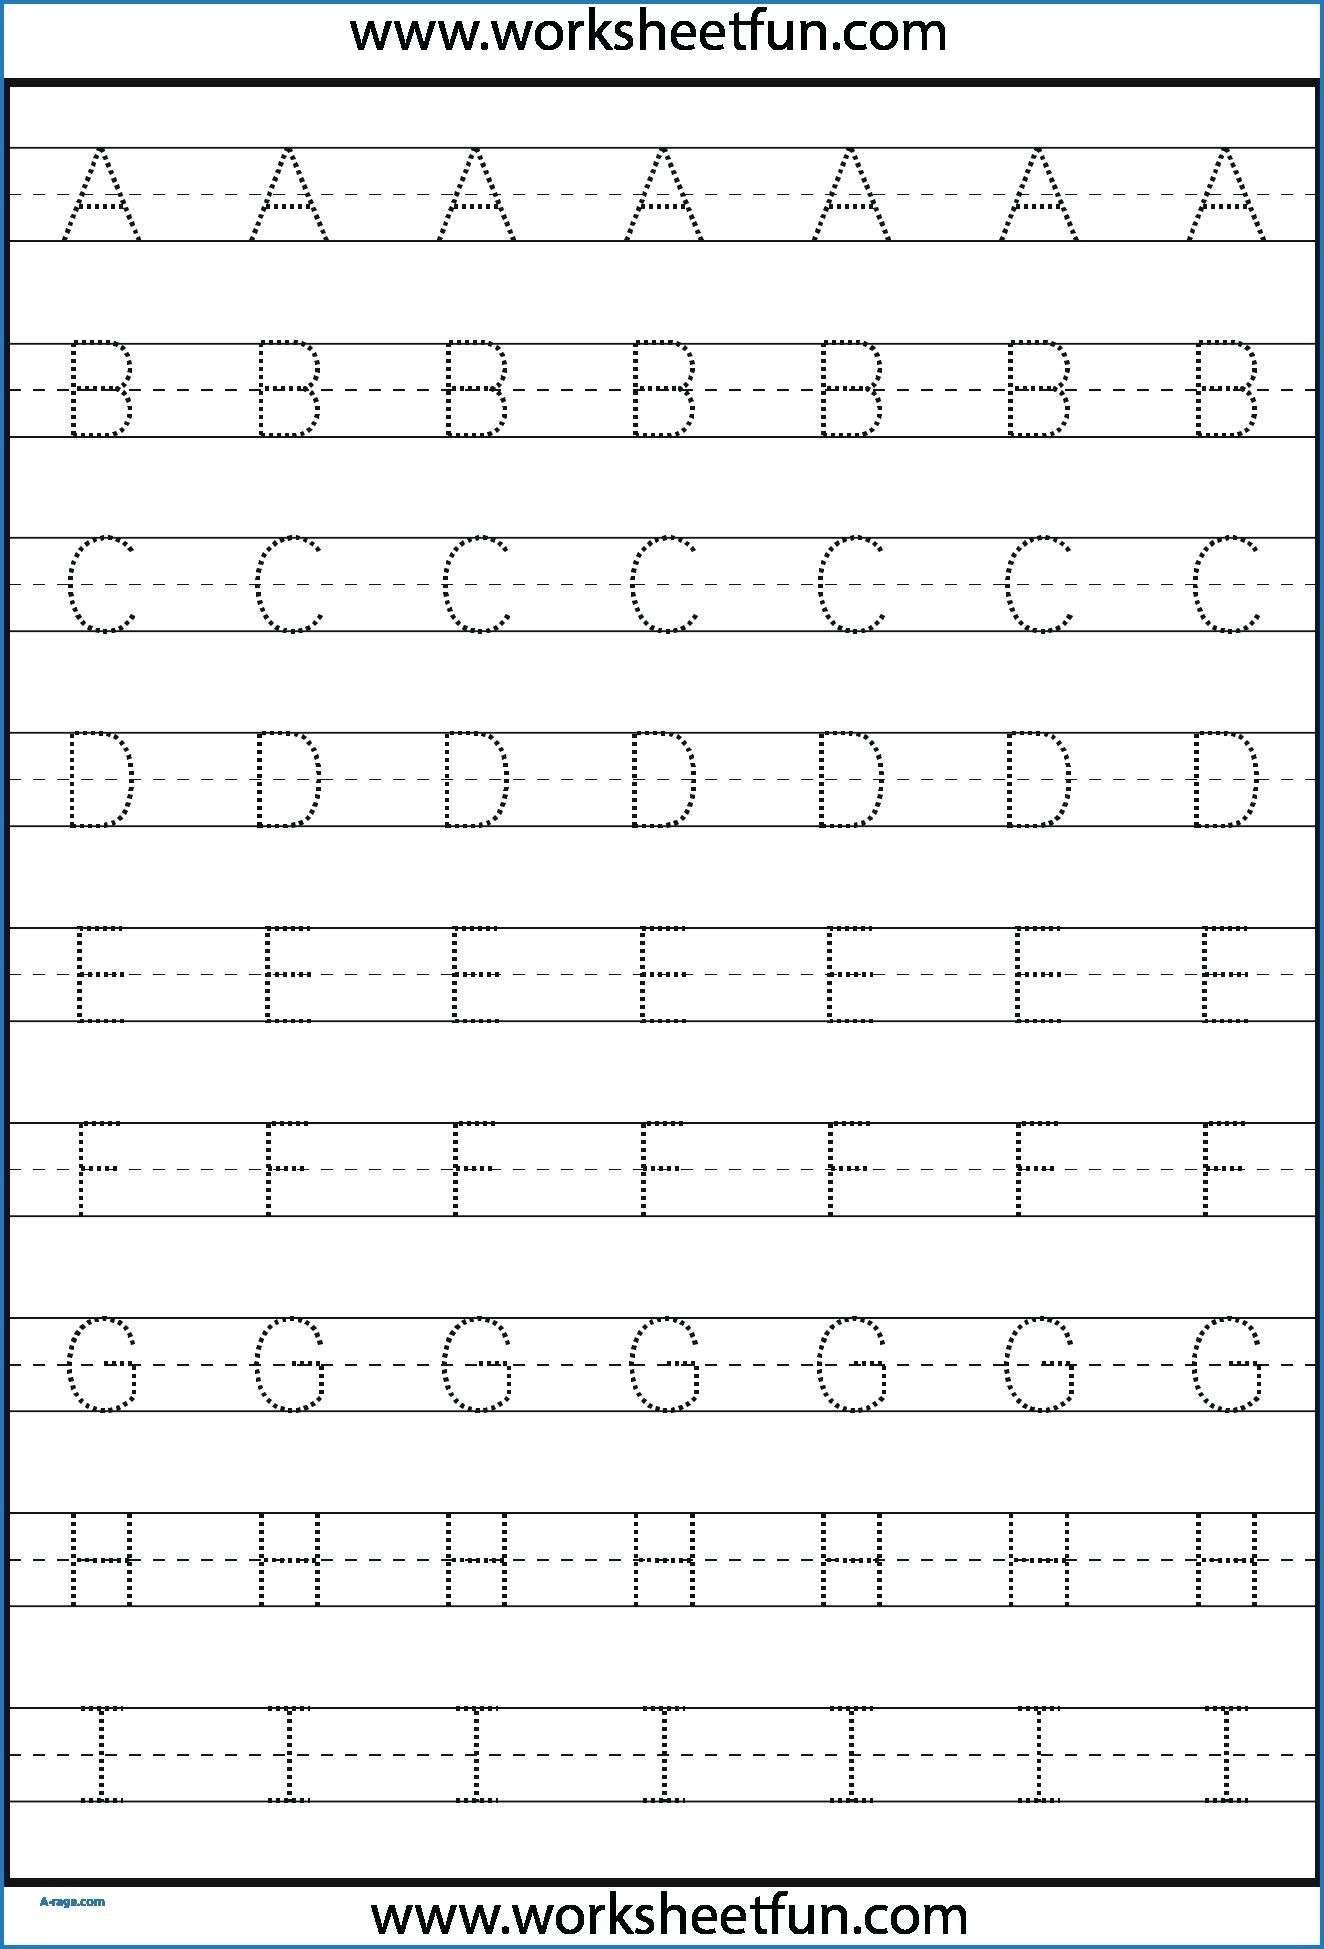 Kindergarten Letter Tracing Worksheets Pdf - Wallpaper Image inside Letter B Worksheets Pdf